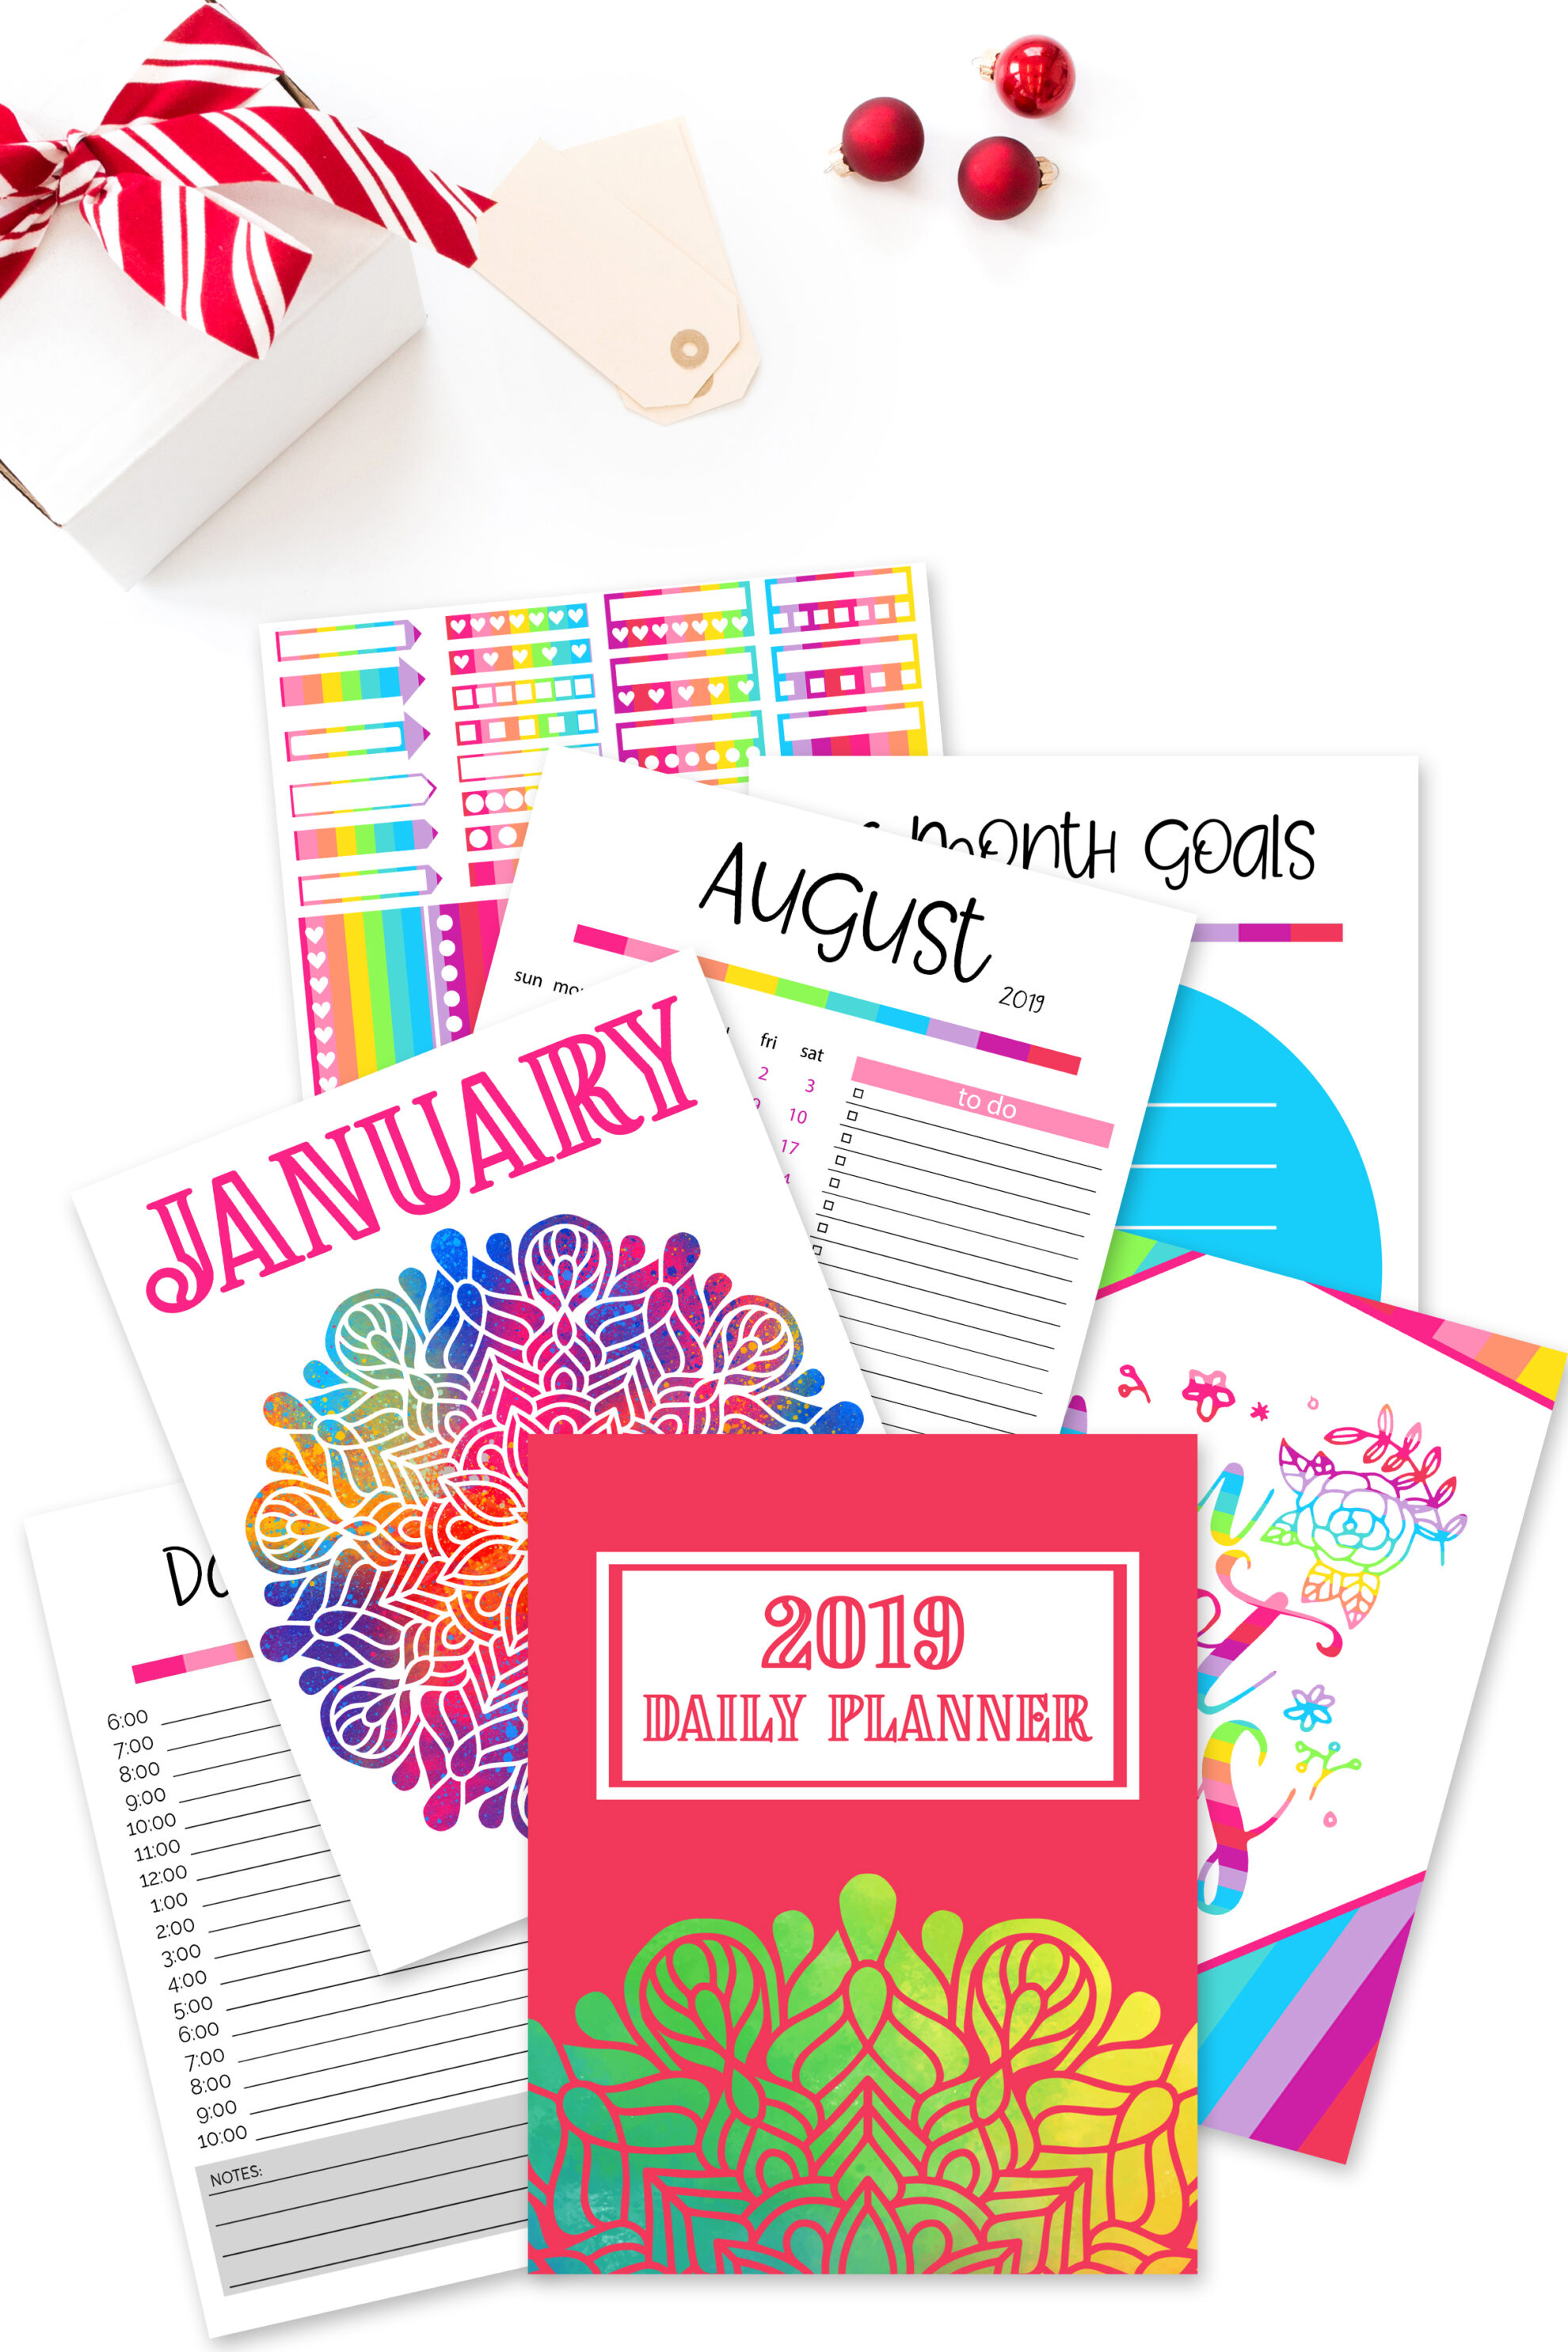 If you enjoy accomplishing goals or just really want to be super organized this upcoming year, these free planner printables - 2019 Daily Planner is for you! #dailyplanner #printableplanner #2019planner #freeplannerprintables